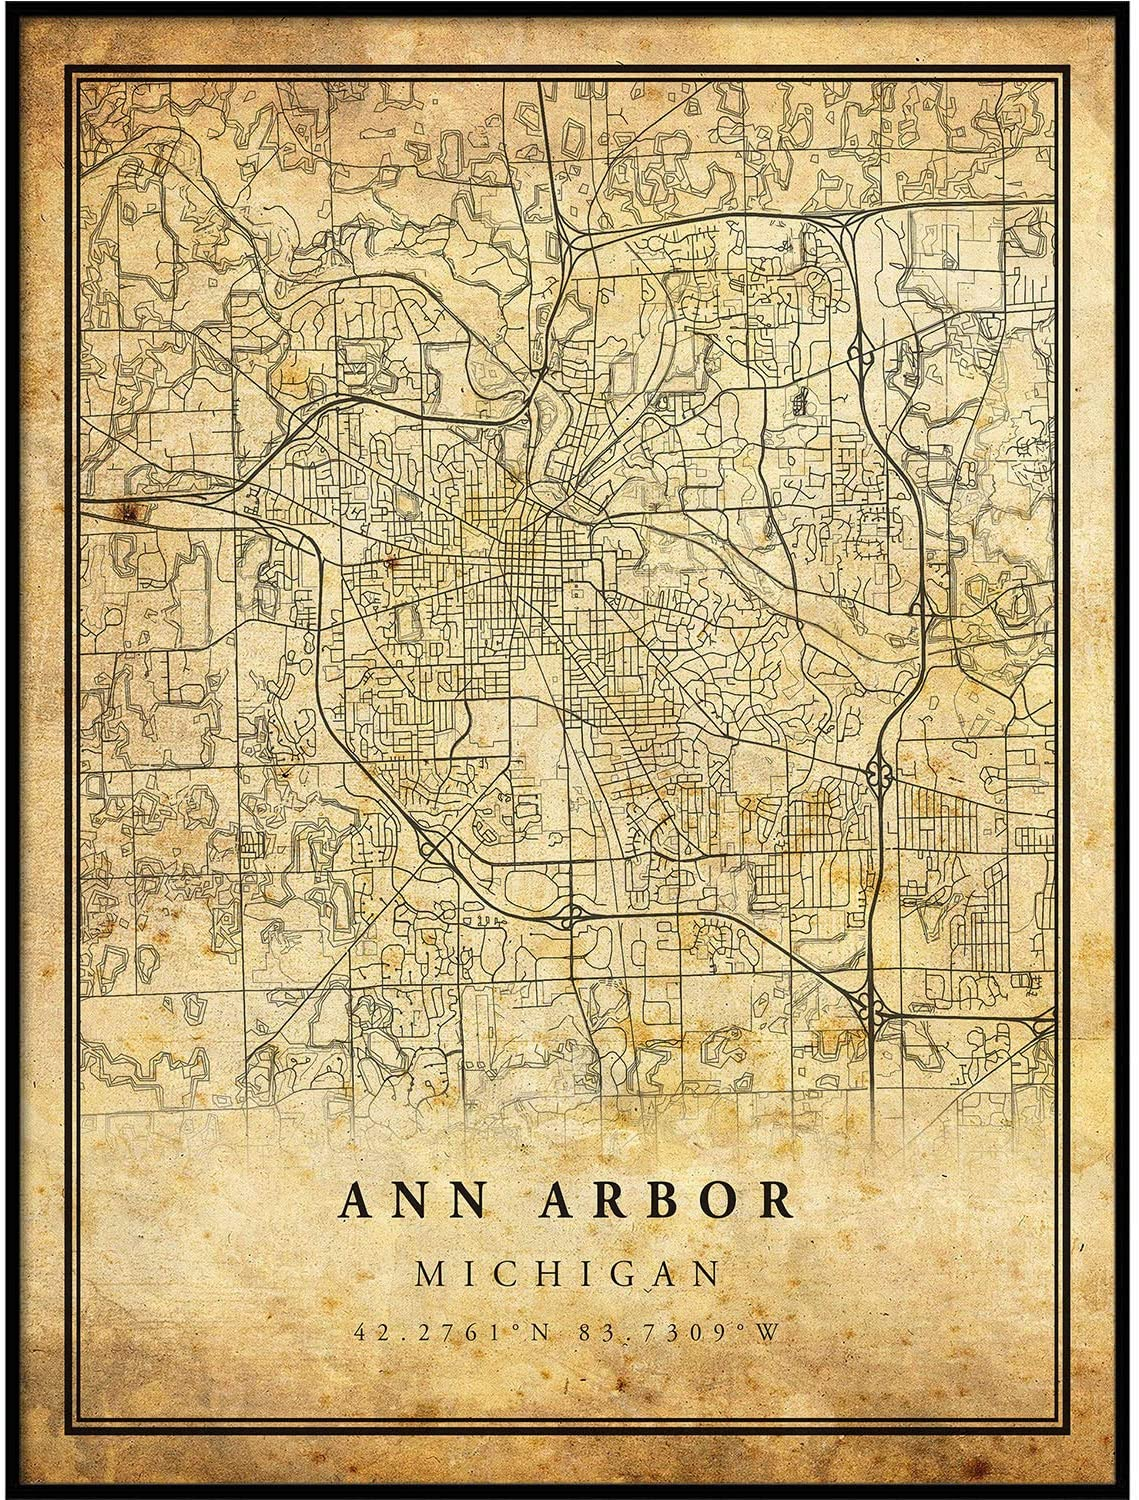 Ann Arbor map Vintage Style Poster Print | Old City Artwork Prints | Antique Style Home Decor | Michigan Wall Art Gift | high res Vintage map 8.5x11